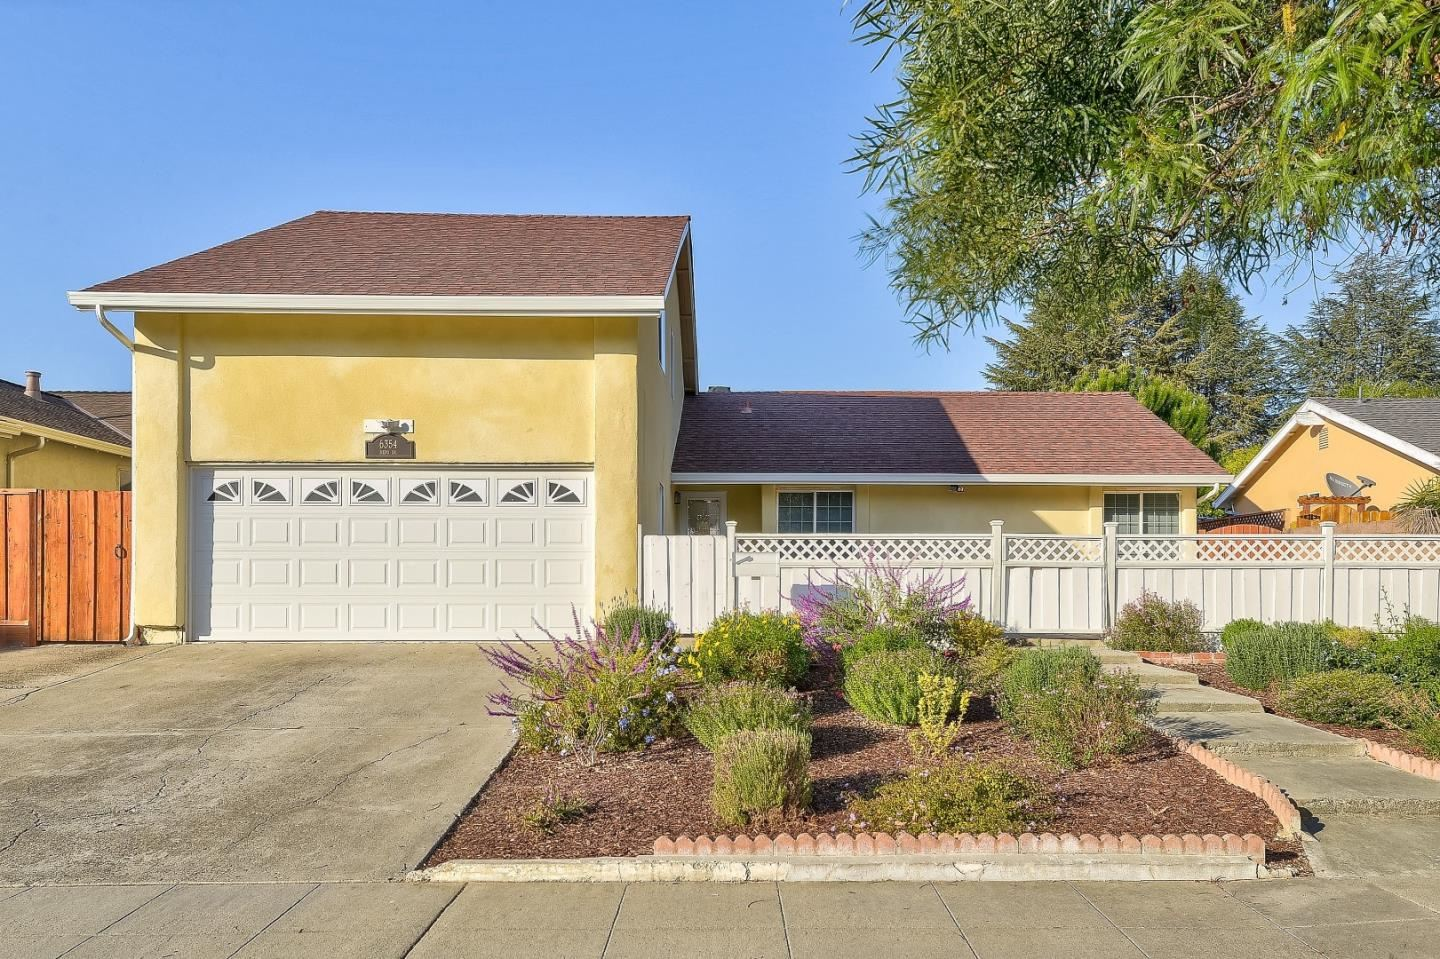 Photo for 6354 Nepo DR, SAN JOSE, CA 95119 (MLS # ML81779174)